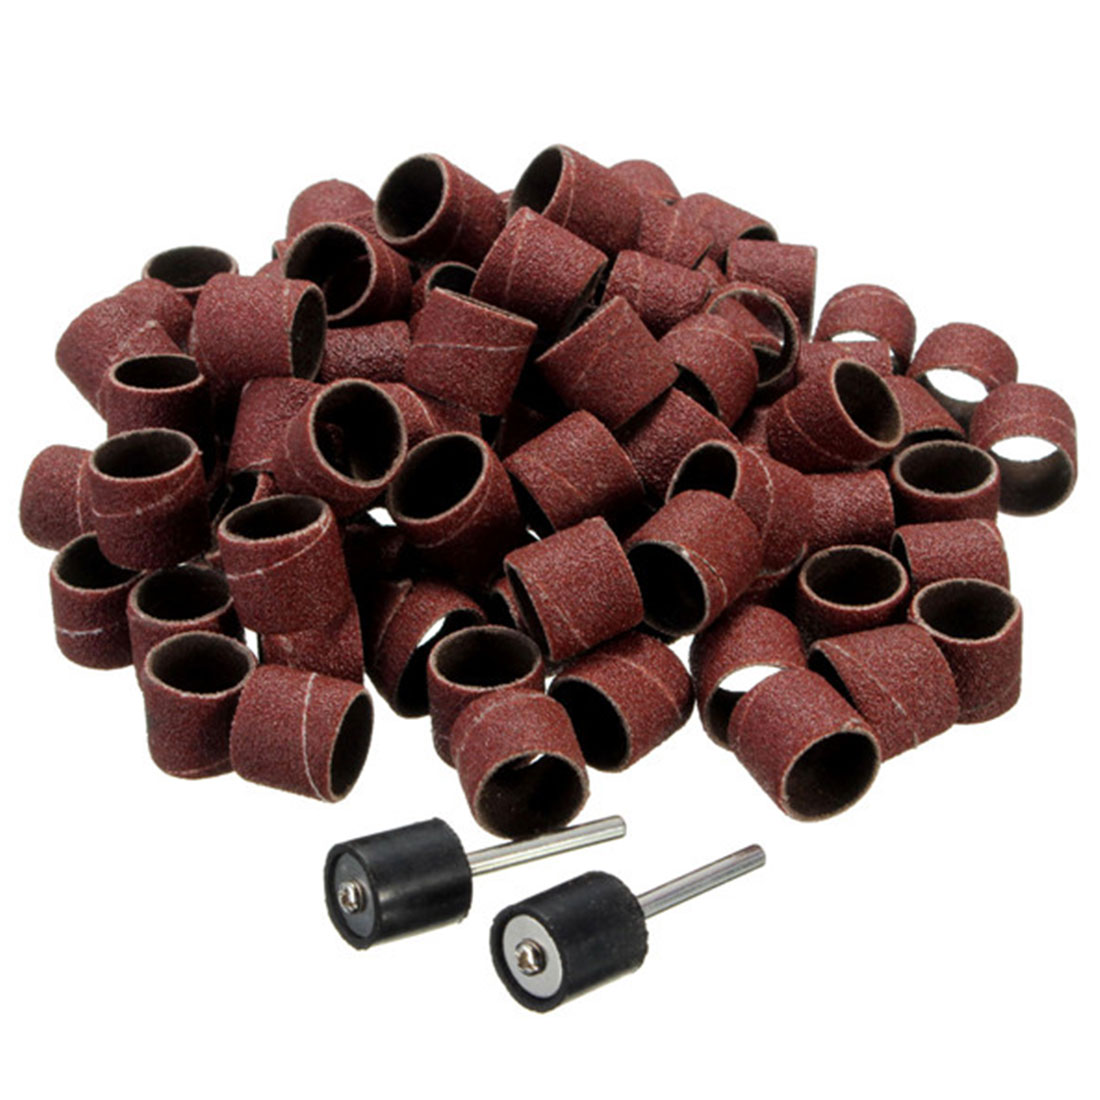 80# 9.5mm Drum Sanding Kit 100Pcs Sanding Band Dremel Accessories With 2Pcs 3.17mm Sand Mandrel For Grinding Tools